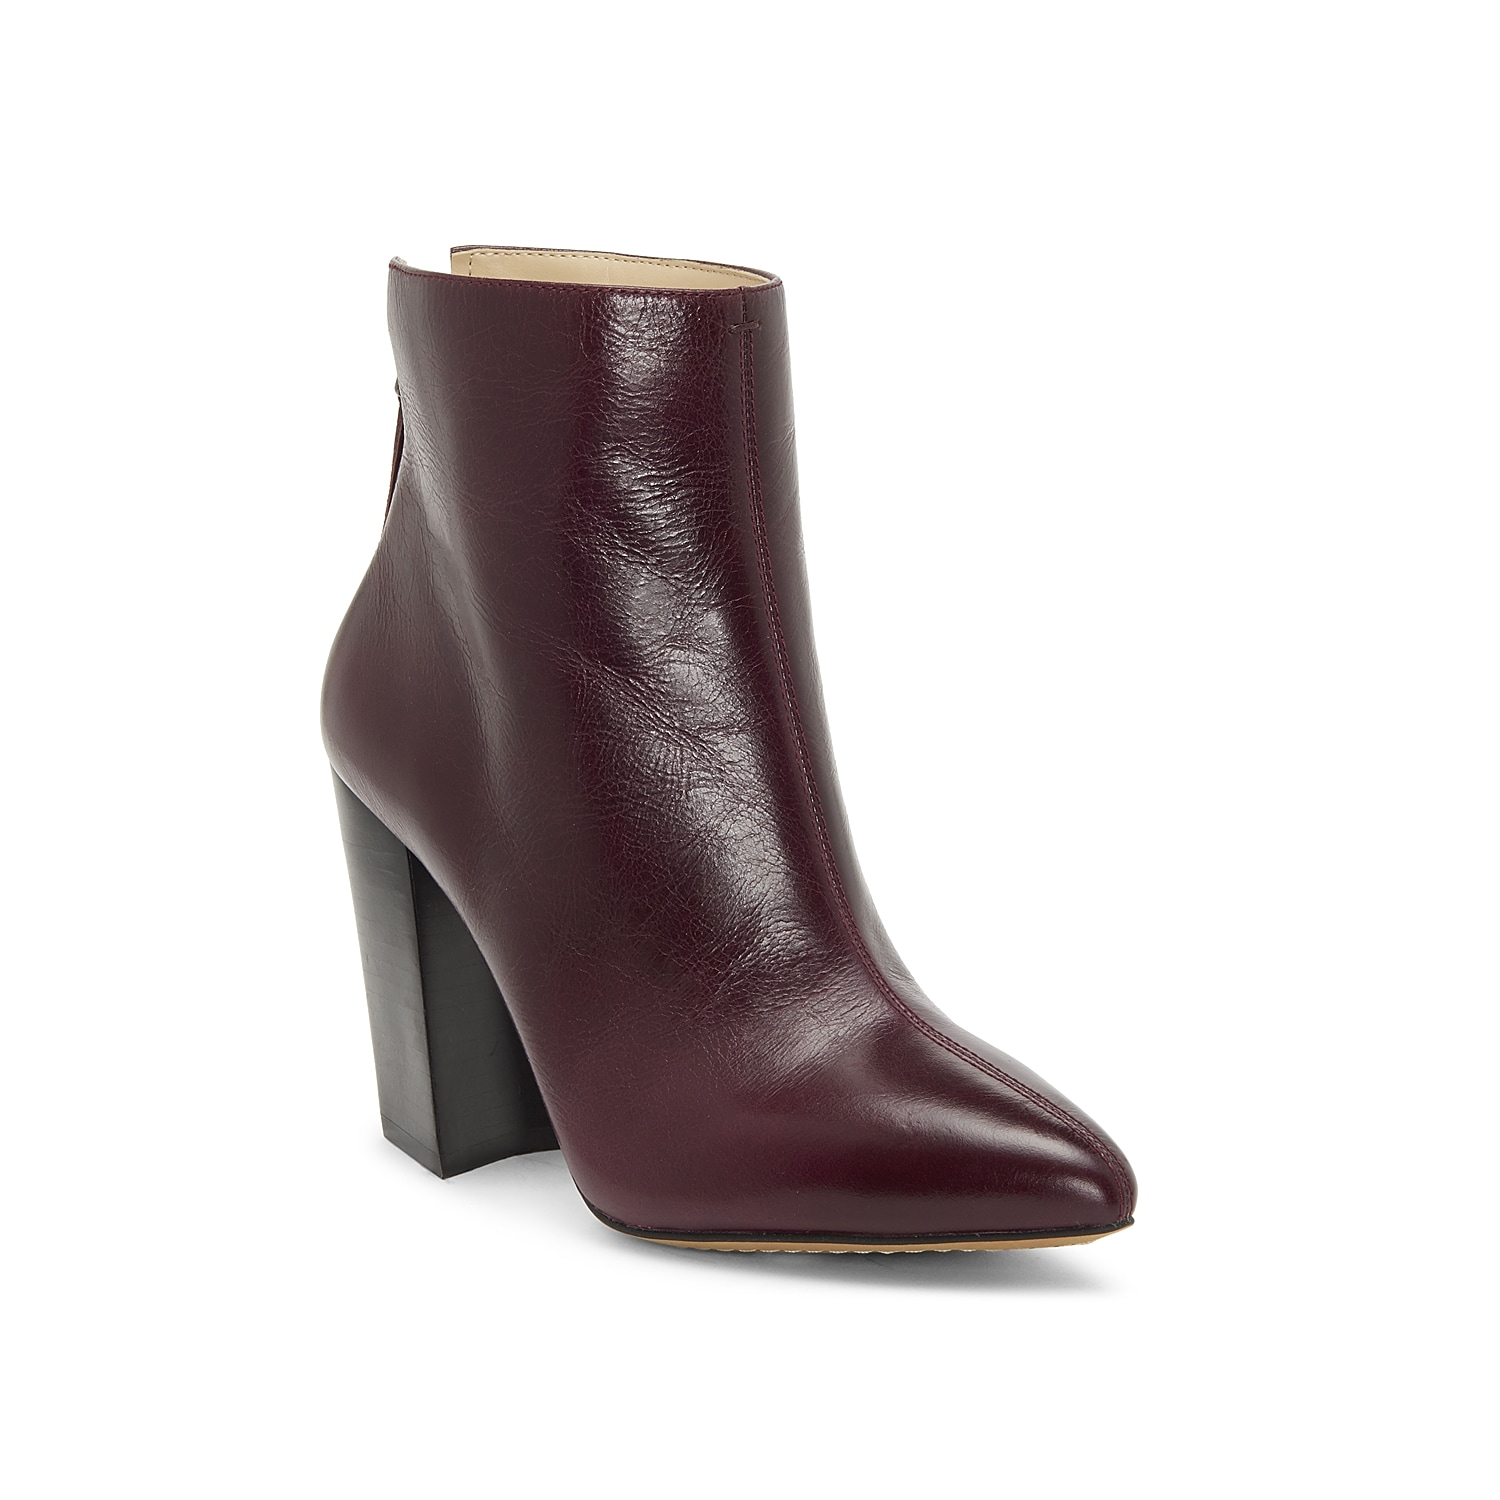 Streamline your look with the Saavie bootie from Vince Camuto. These ankle boots are crafted from rich leather and feature a trend-right slanted heel for an architectural touch. Click here for Boot Measuring Guide.